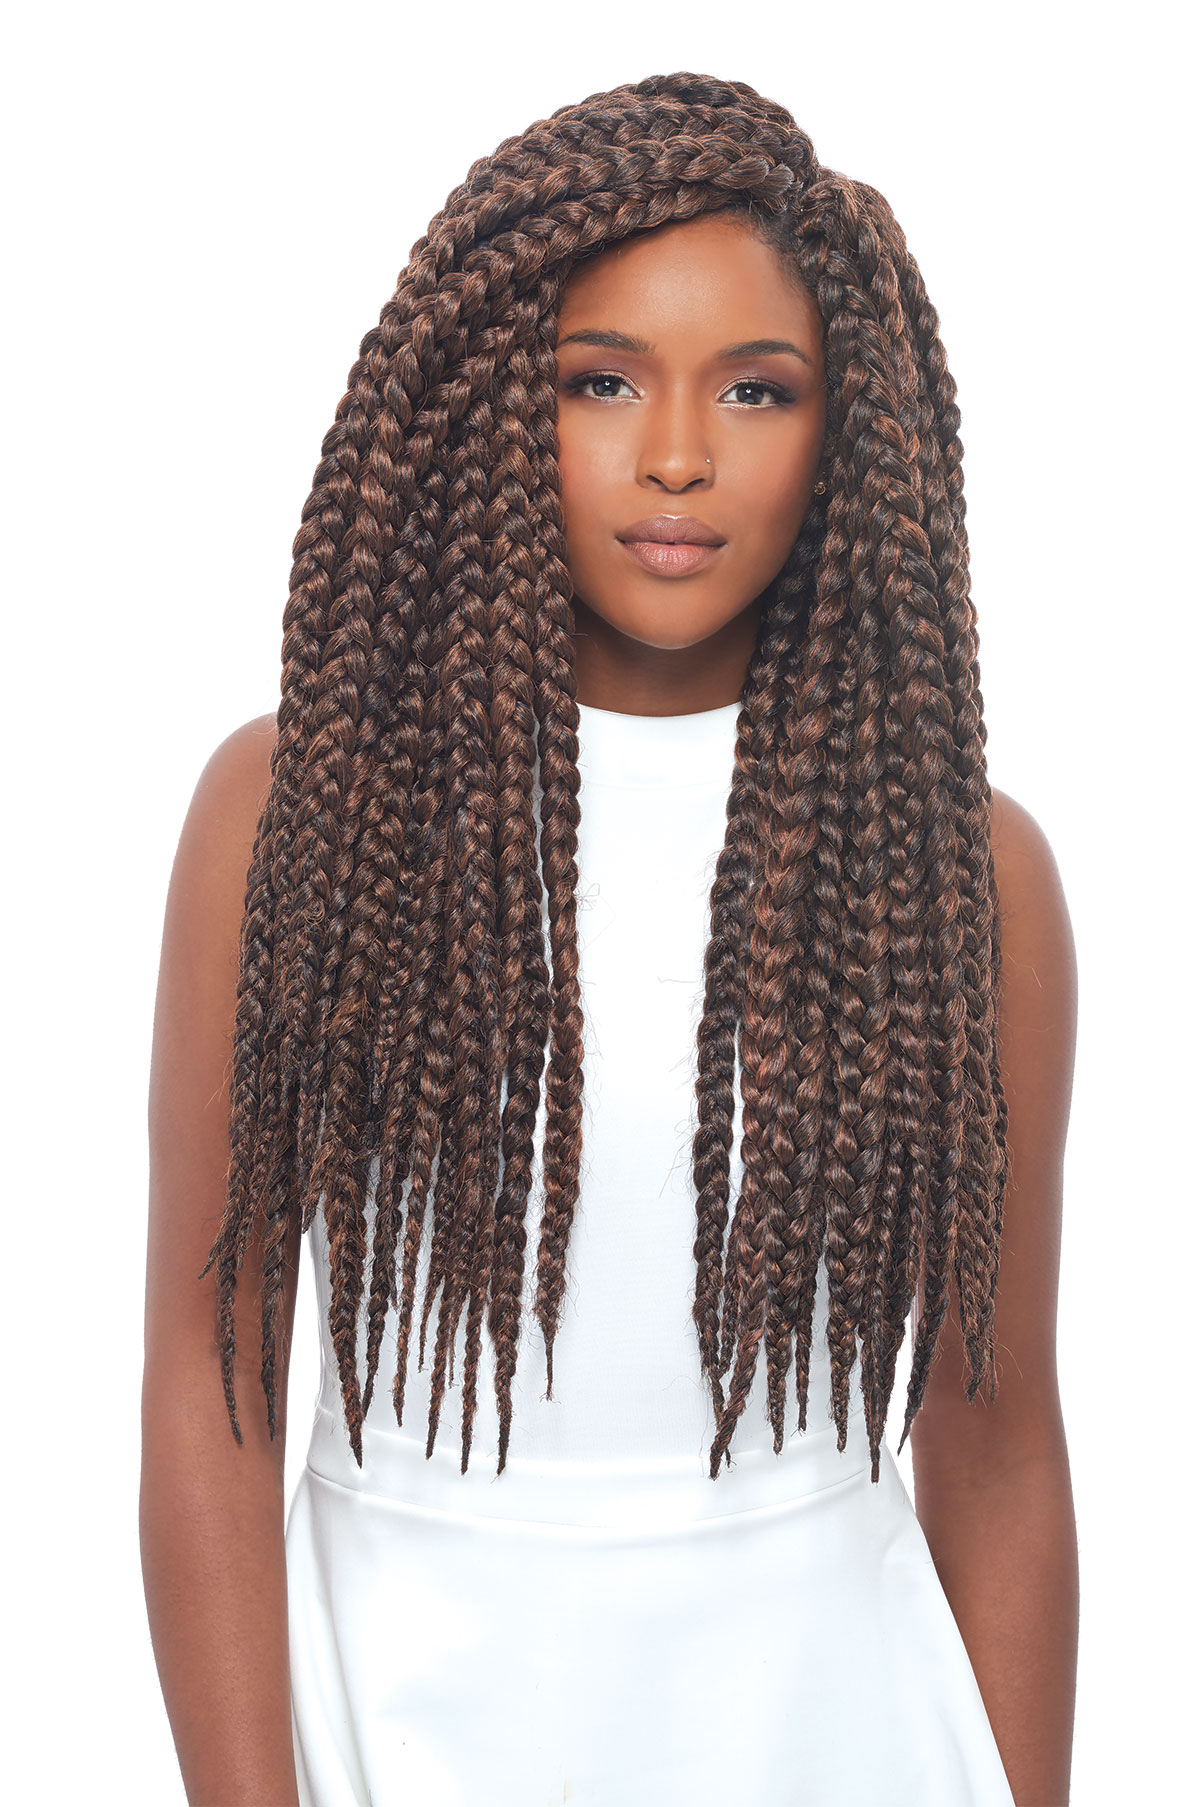 Crochet Braids Janet Collection : ... BRAID 24 - JANET COLLECTION SYNTHETIC CROCHET BRAIDING HAIR eBay